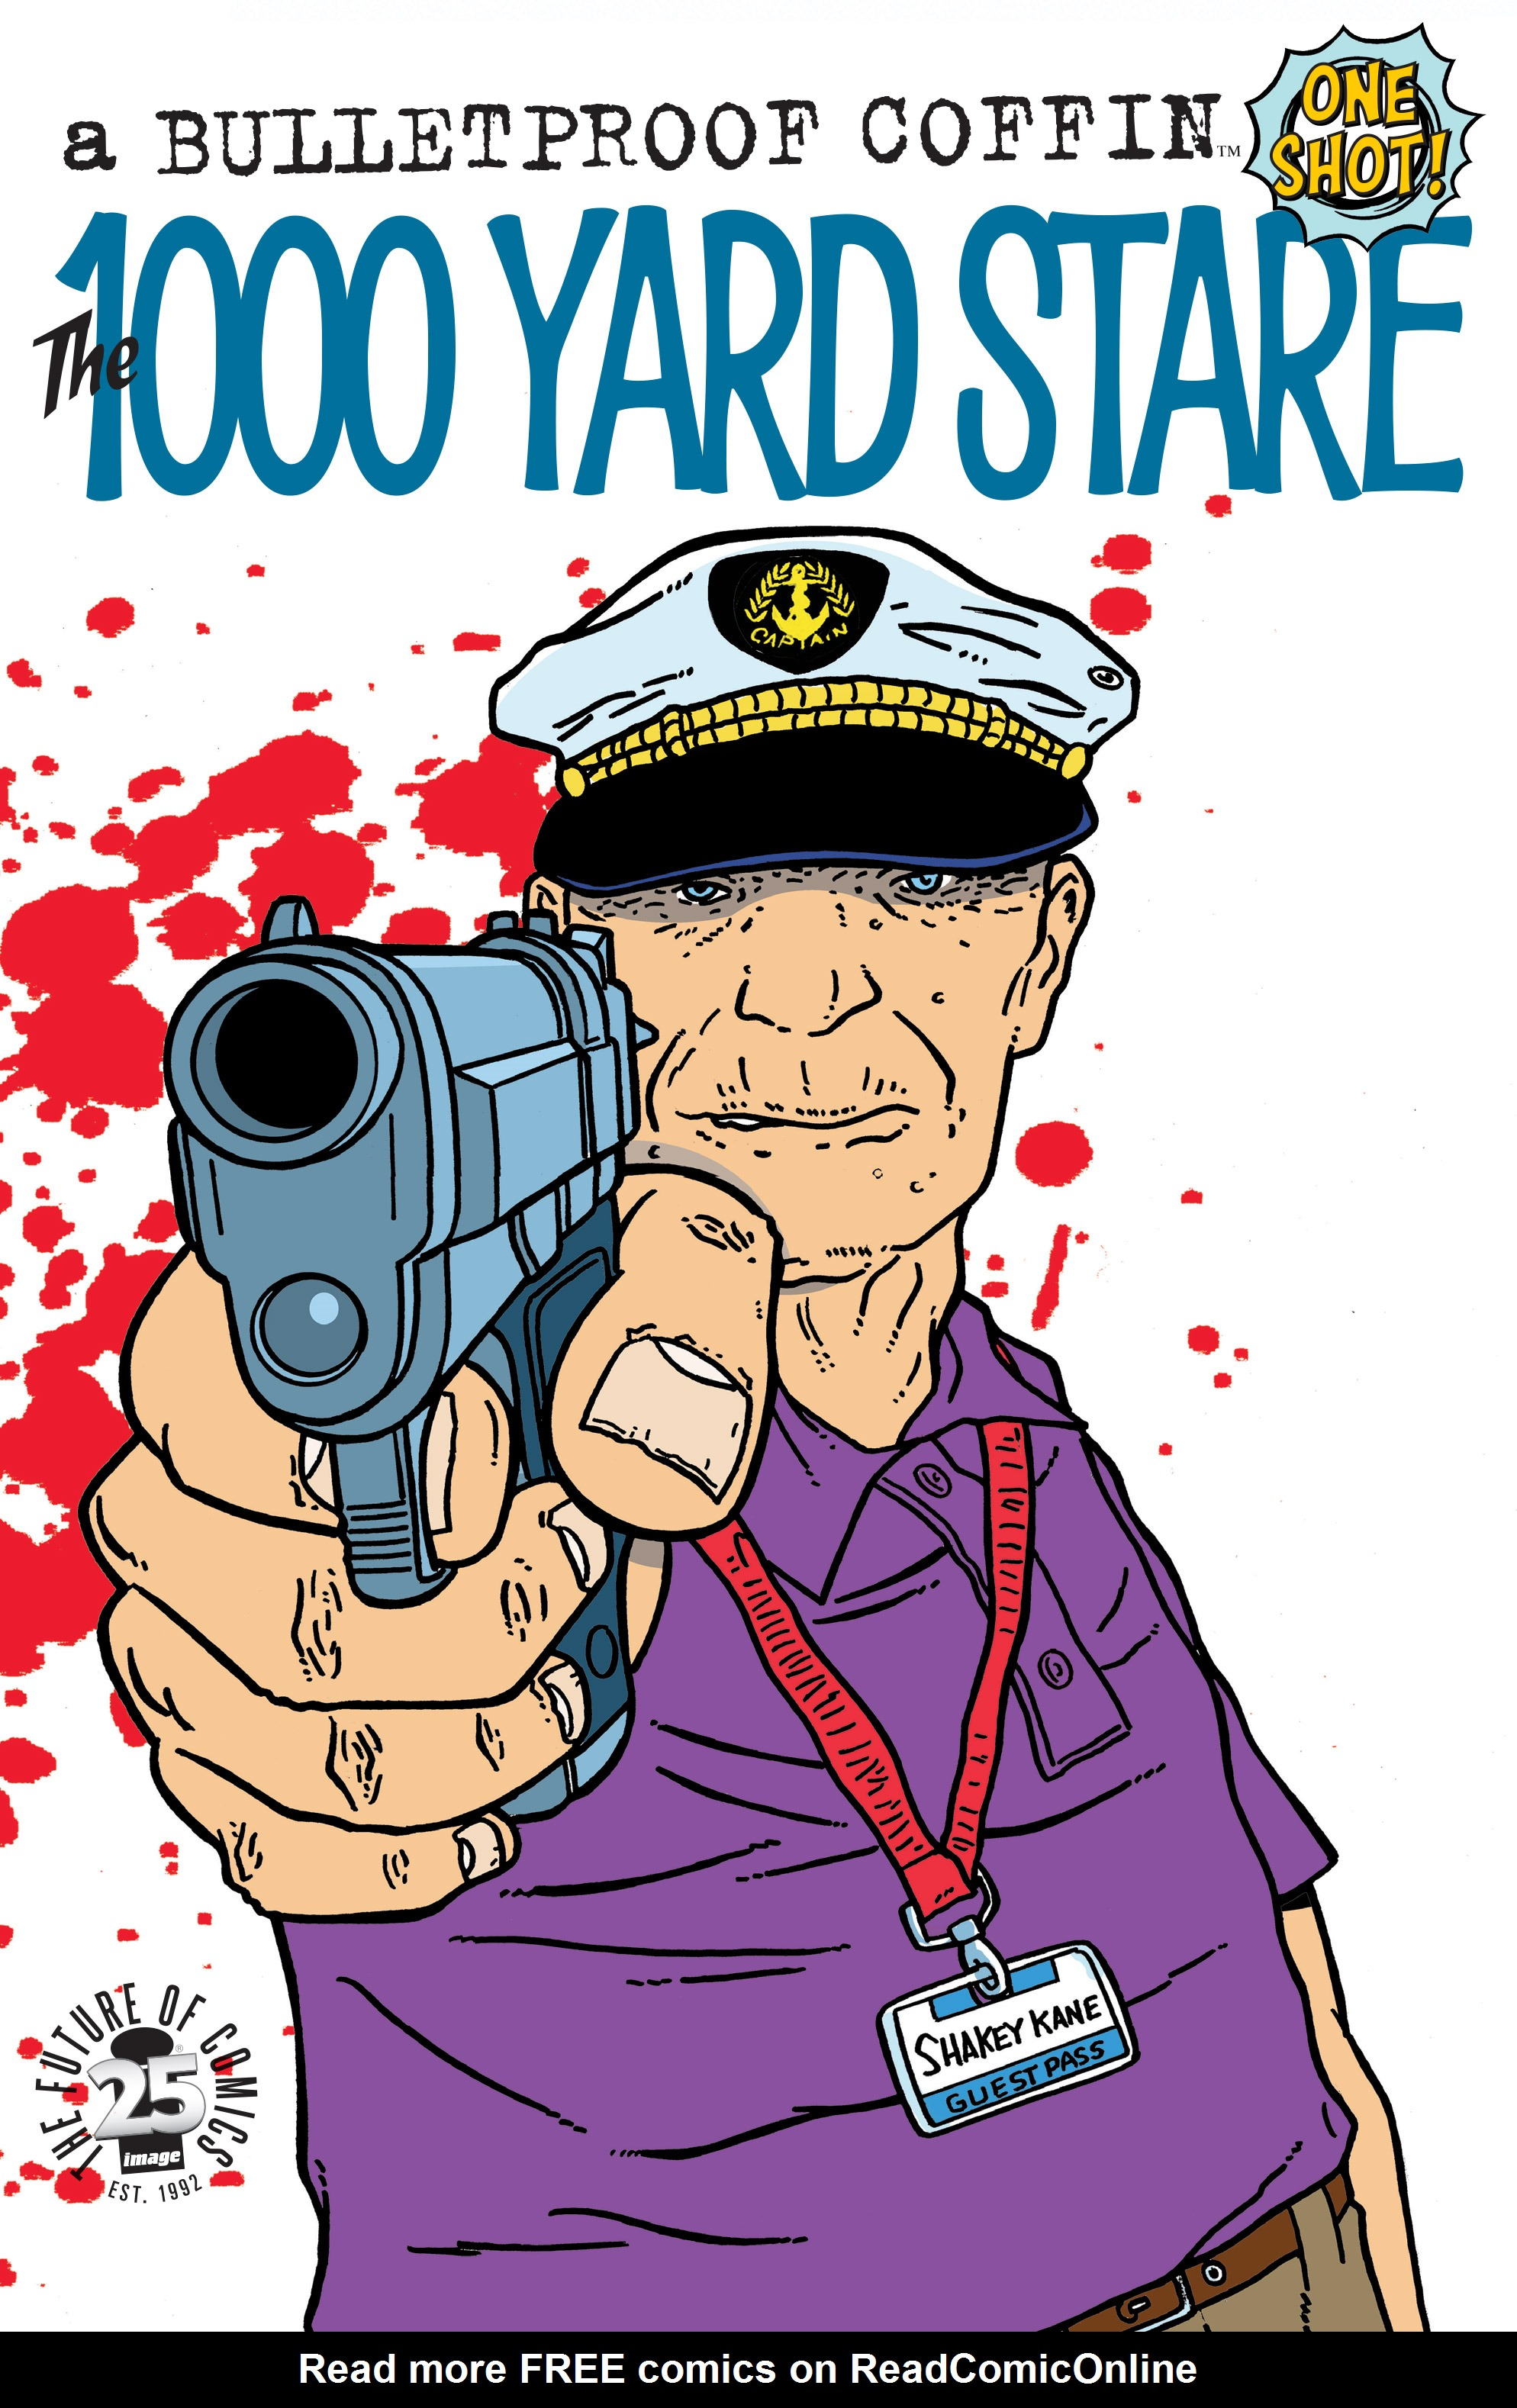 Read online Bulletproof Coffin: The Thousand Yard Stare comic -  Issue # Full - 1